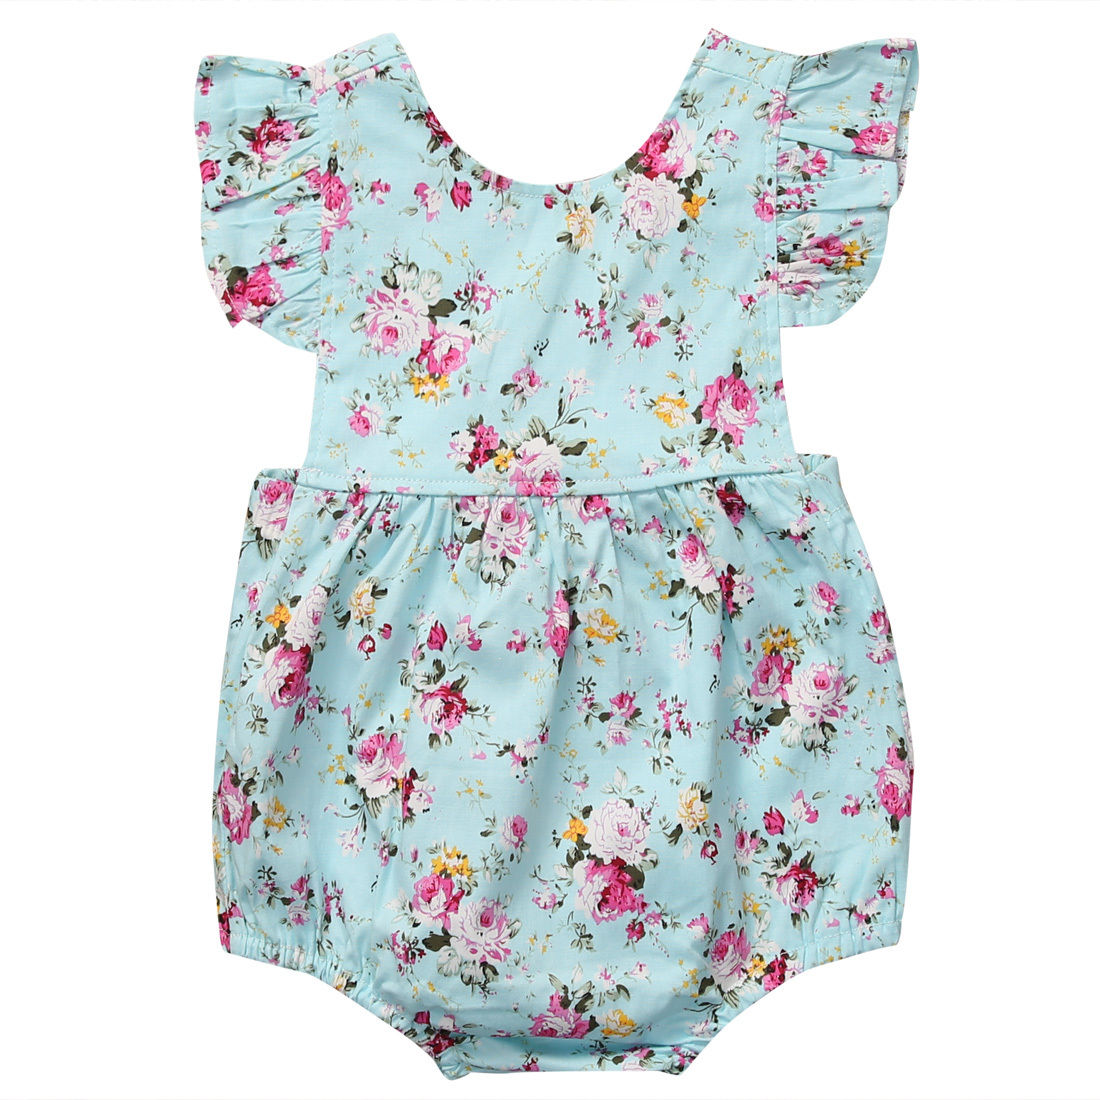 Newborn Infant Baby Girl Romper Floral Ruffles O Neck Jumpsuits Sunsuit 2018 Summer New Clothes Outfits